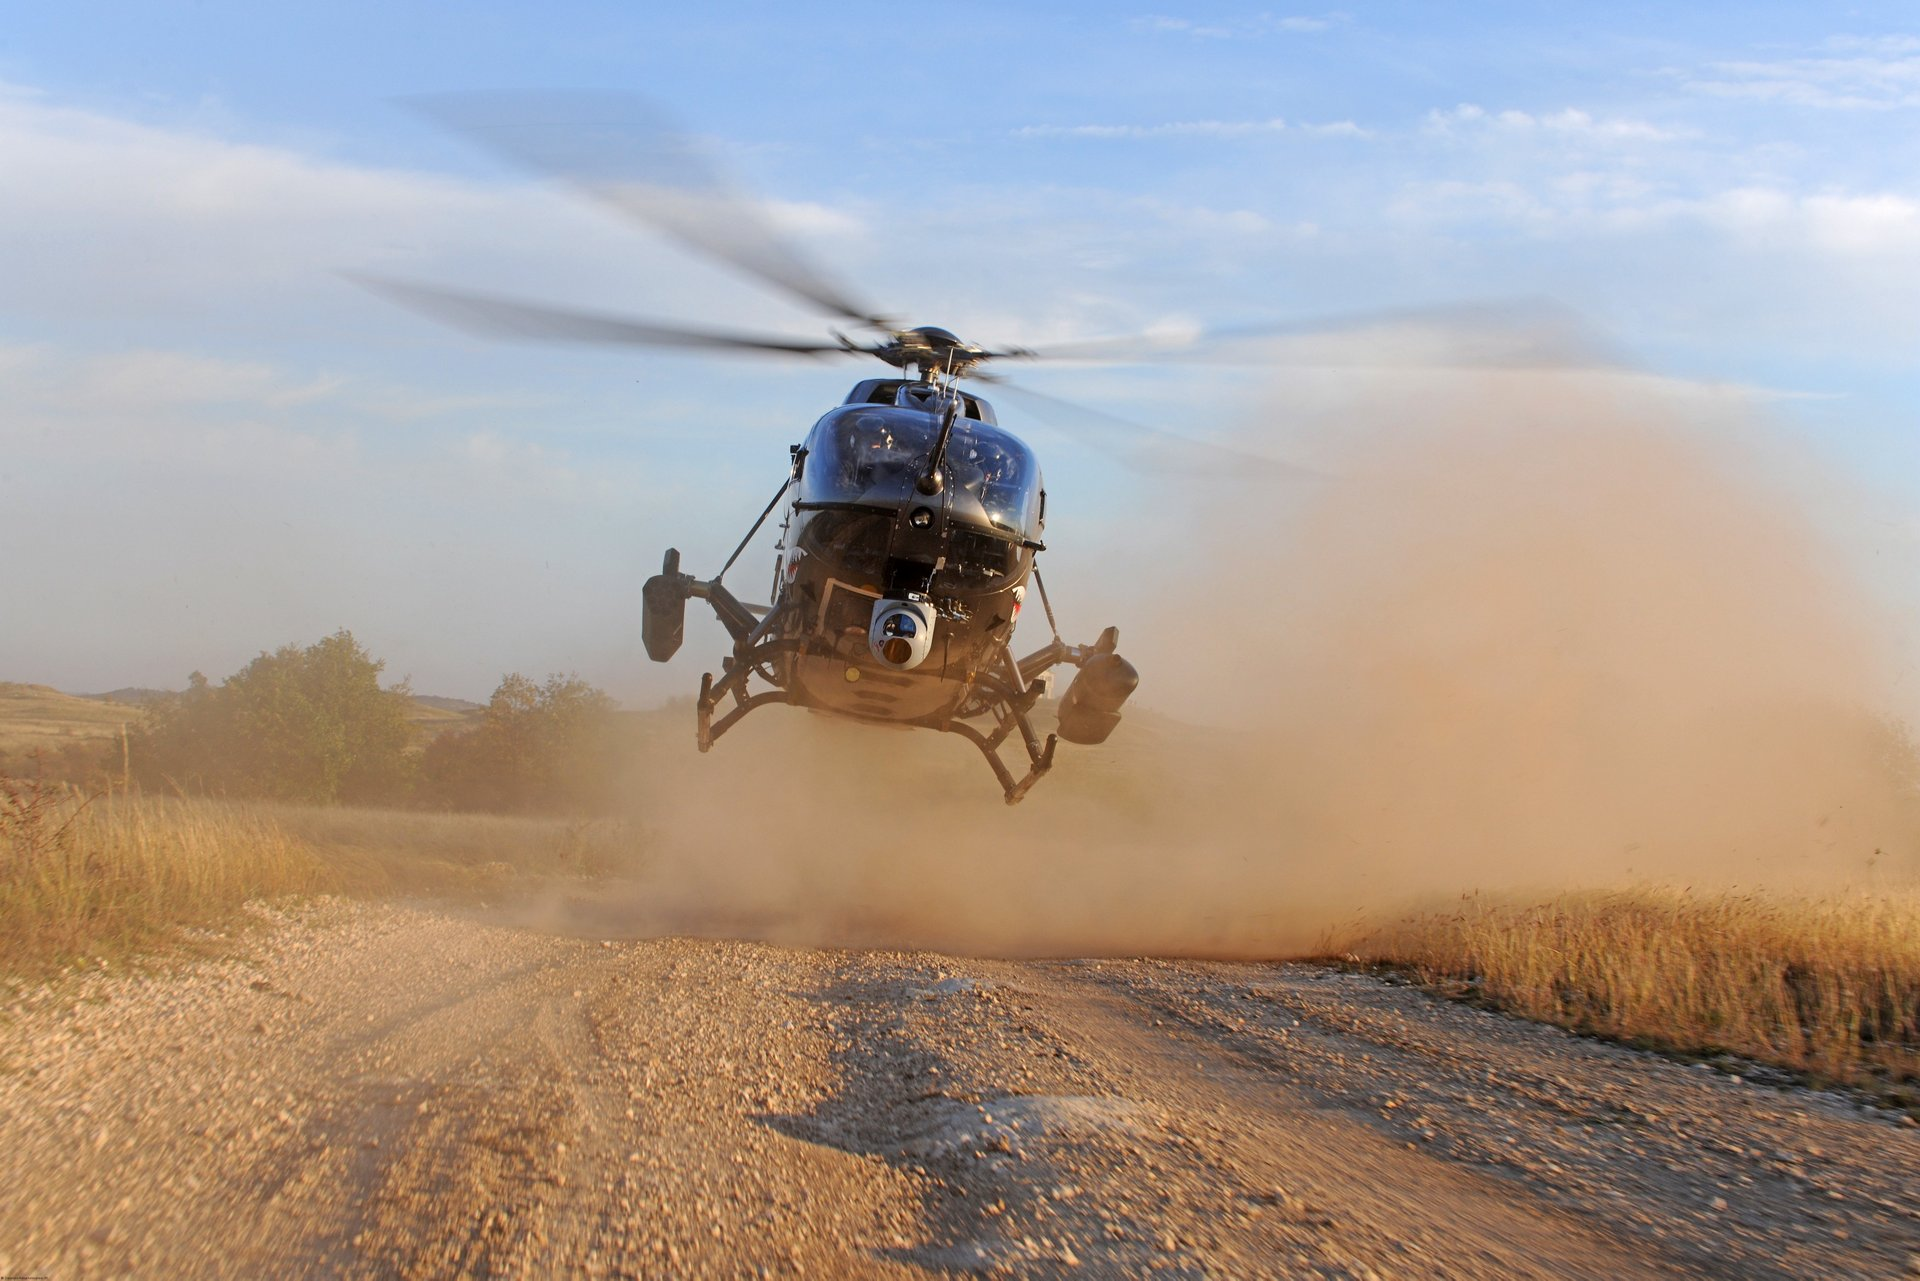 Modern and versatile, the H145M offers a wide range of tactical options for battlefield roles.